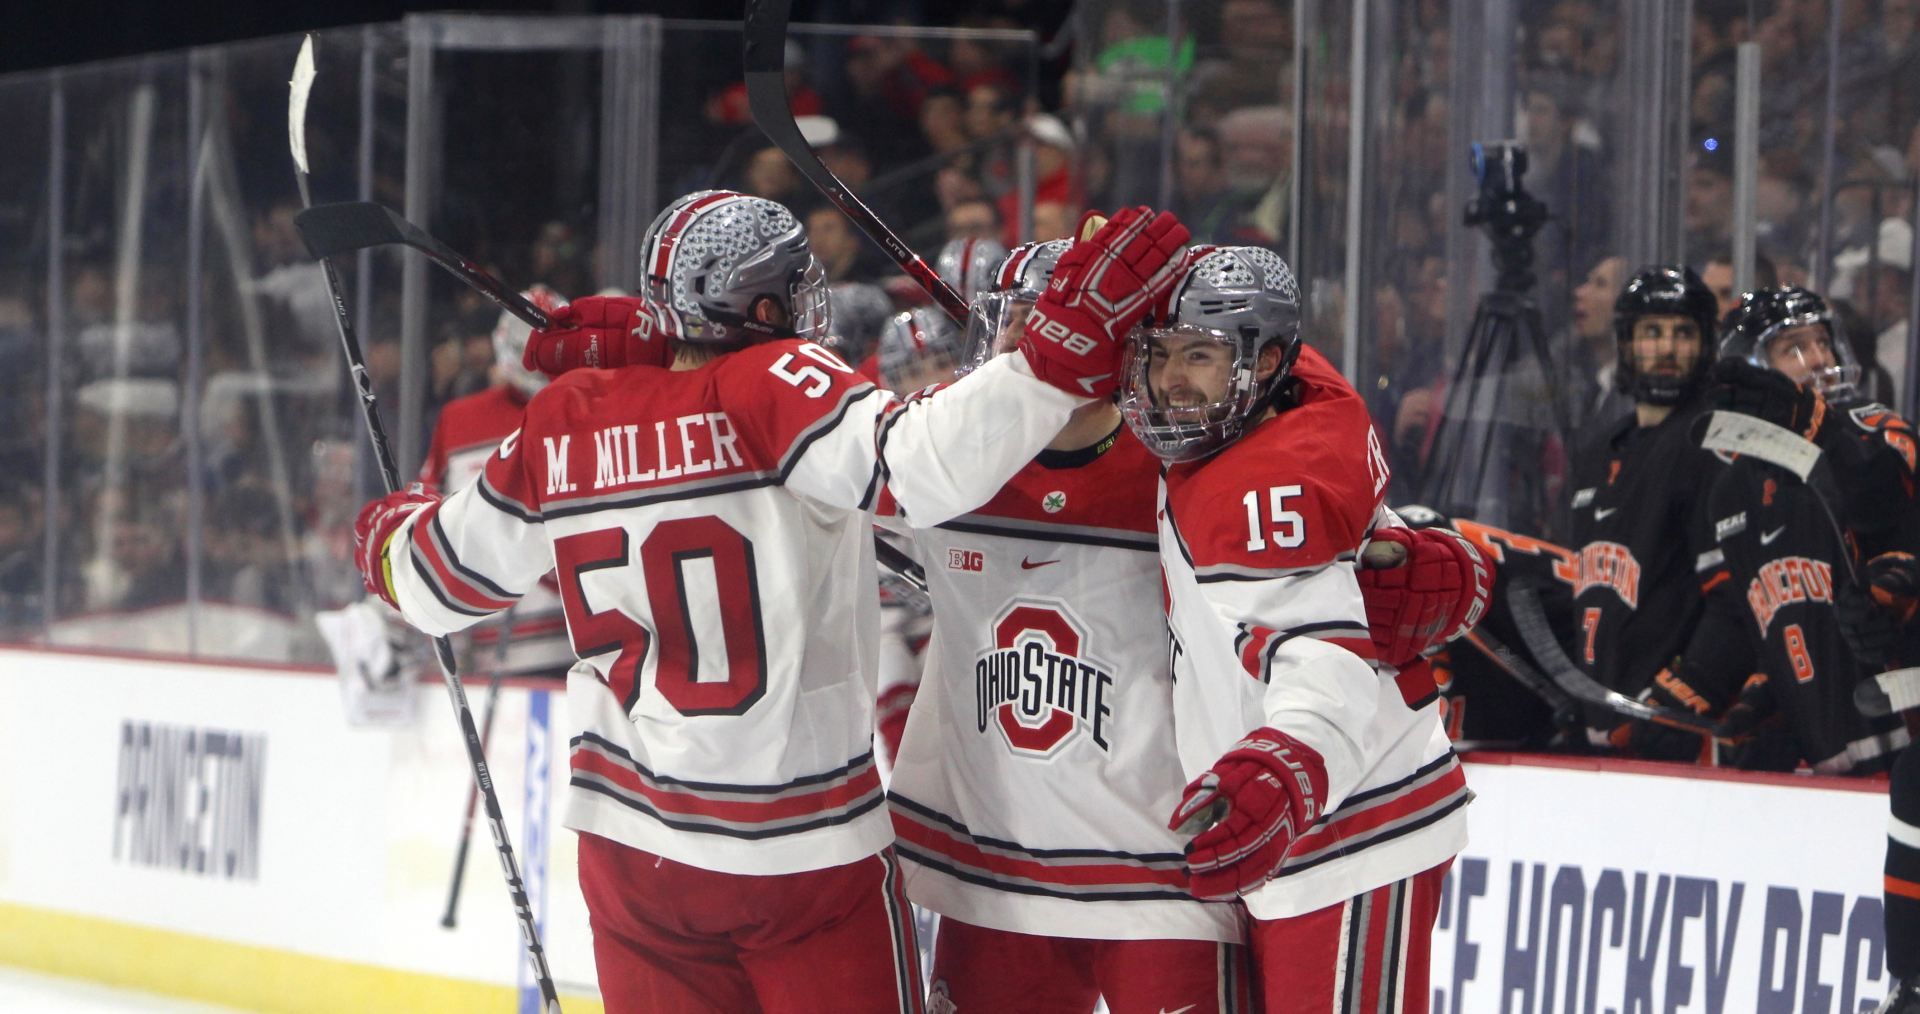 Men's Hockey: Ohio State advances to NCAA tournament Midwest regional final with 4-2 win against Princeton